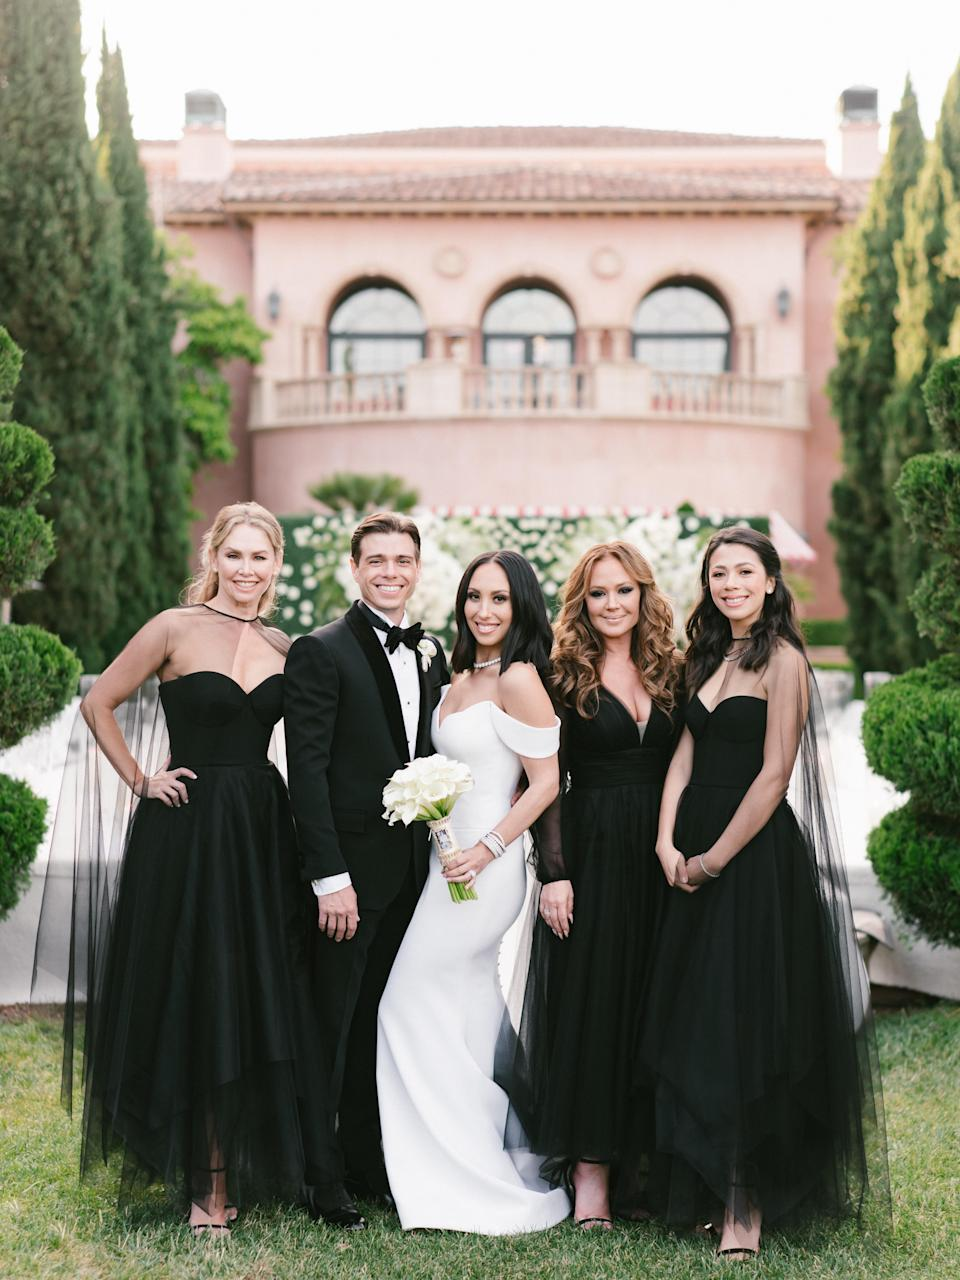 Three dress designers, a PowerPoint presentation, strict makeup rules, rhinestone Tic Tac boxes, custom flooring—<em>Dancing With the Star</em>'s Cheryl Burke had it all, and more. Here she explains why seeking perfection on your wedding day gets a bad rap.